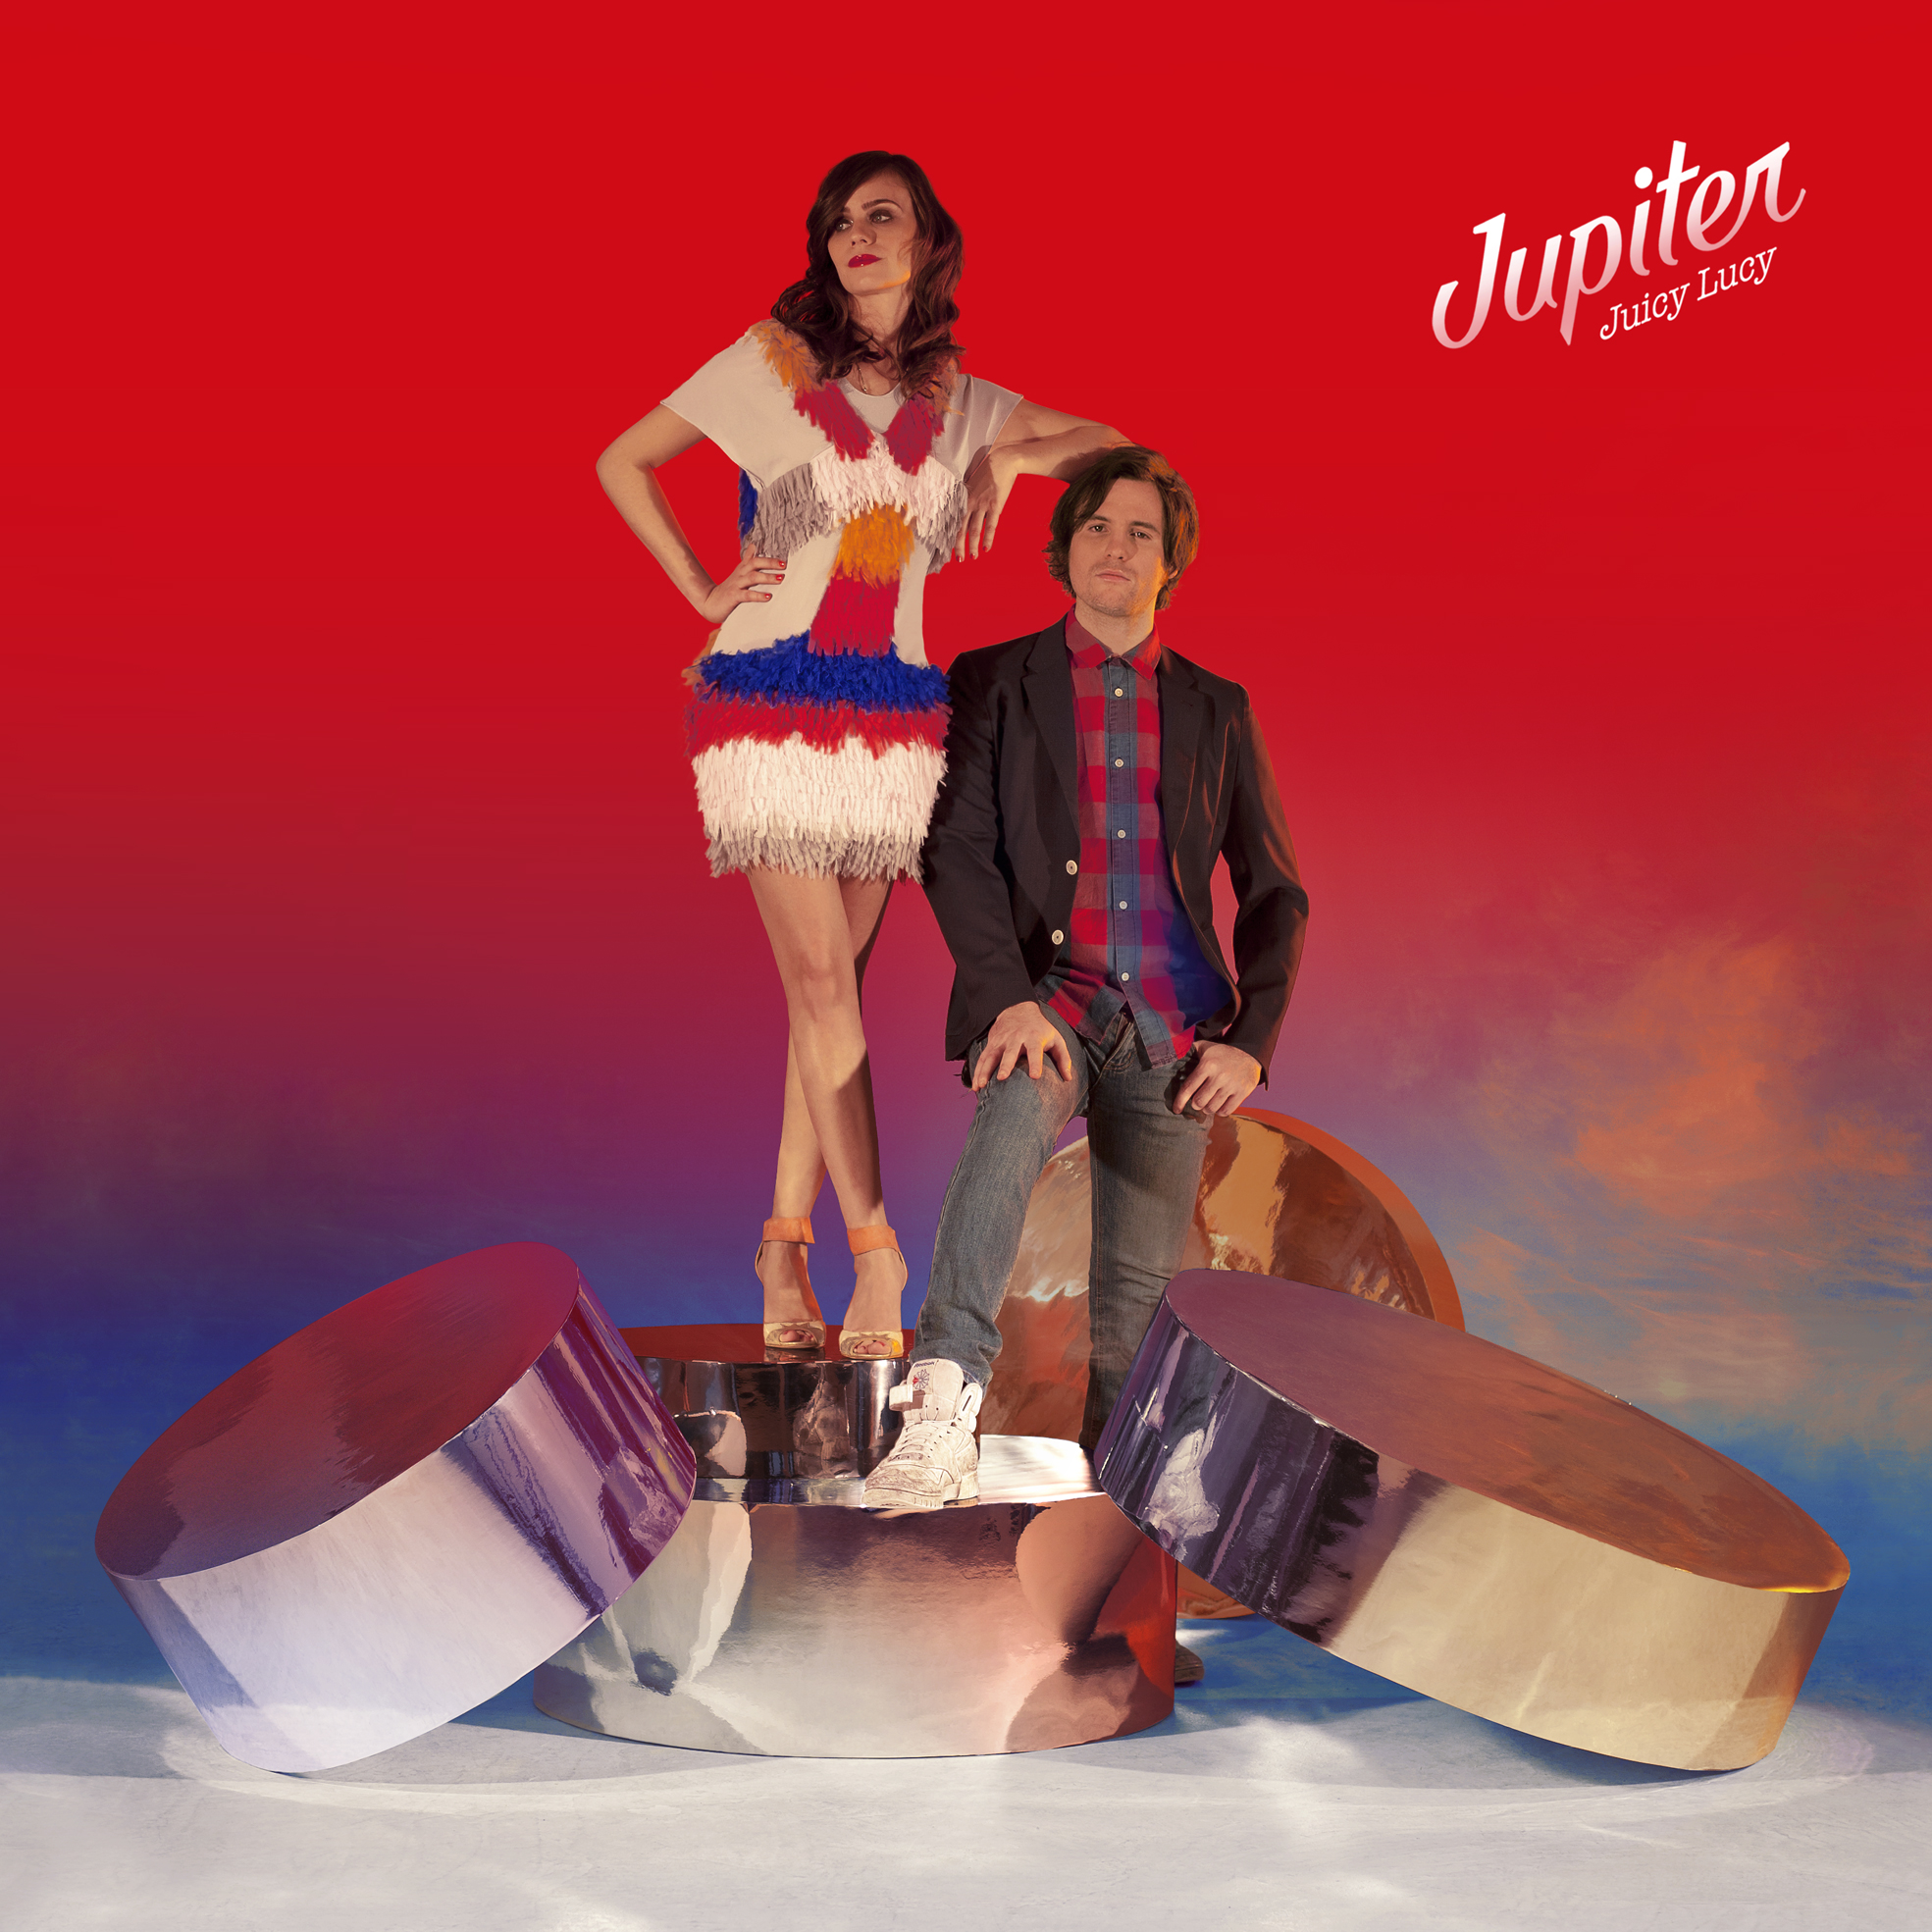 Juicy Lucy, le premier album de Jupiter